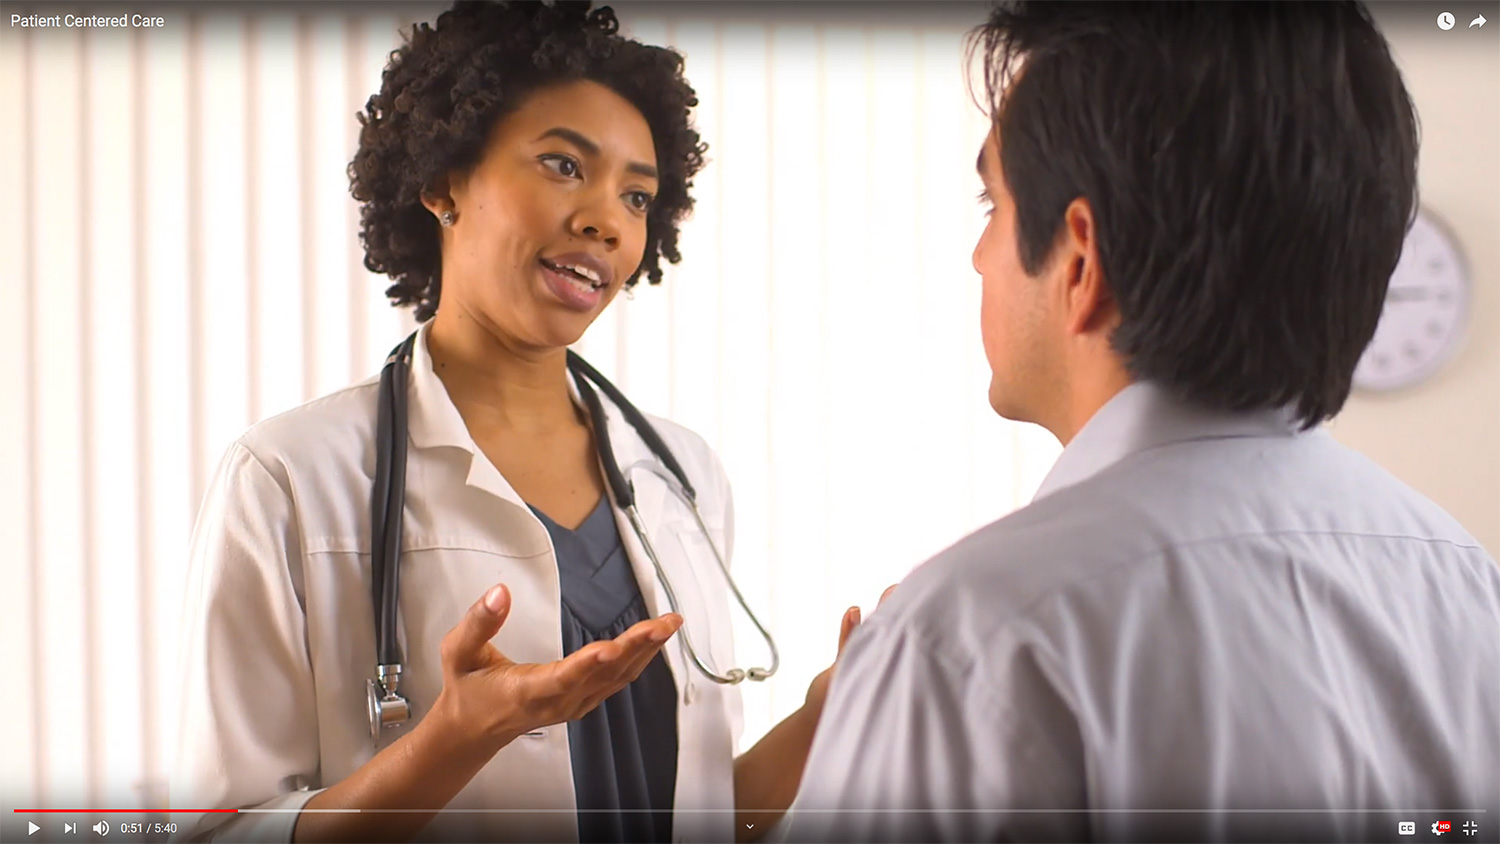 What Happens When a Patient Leads their Appointment?